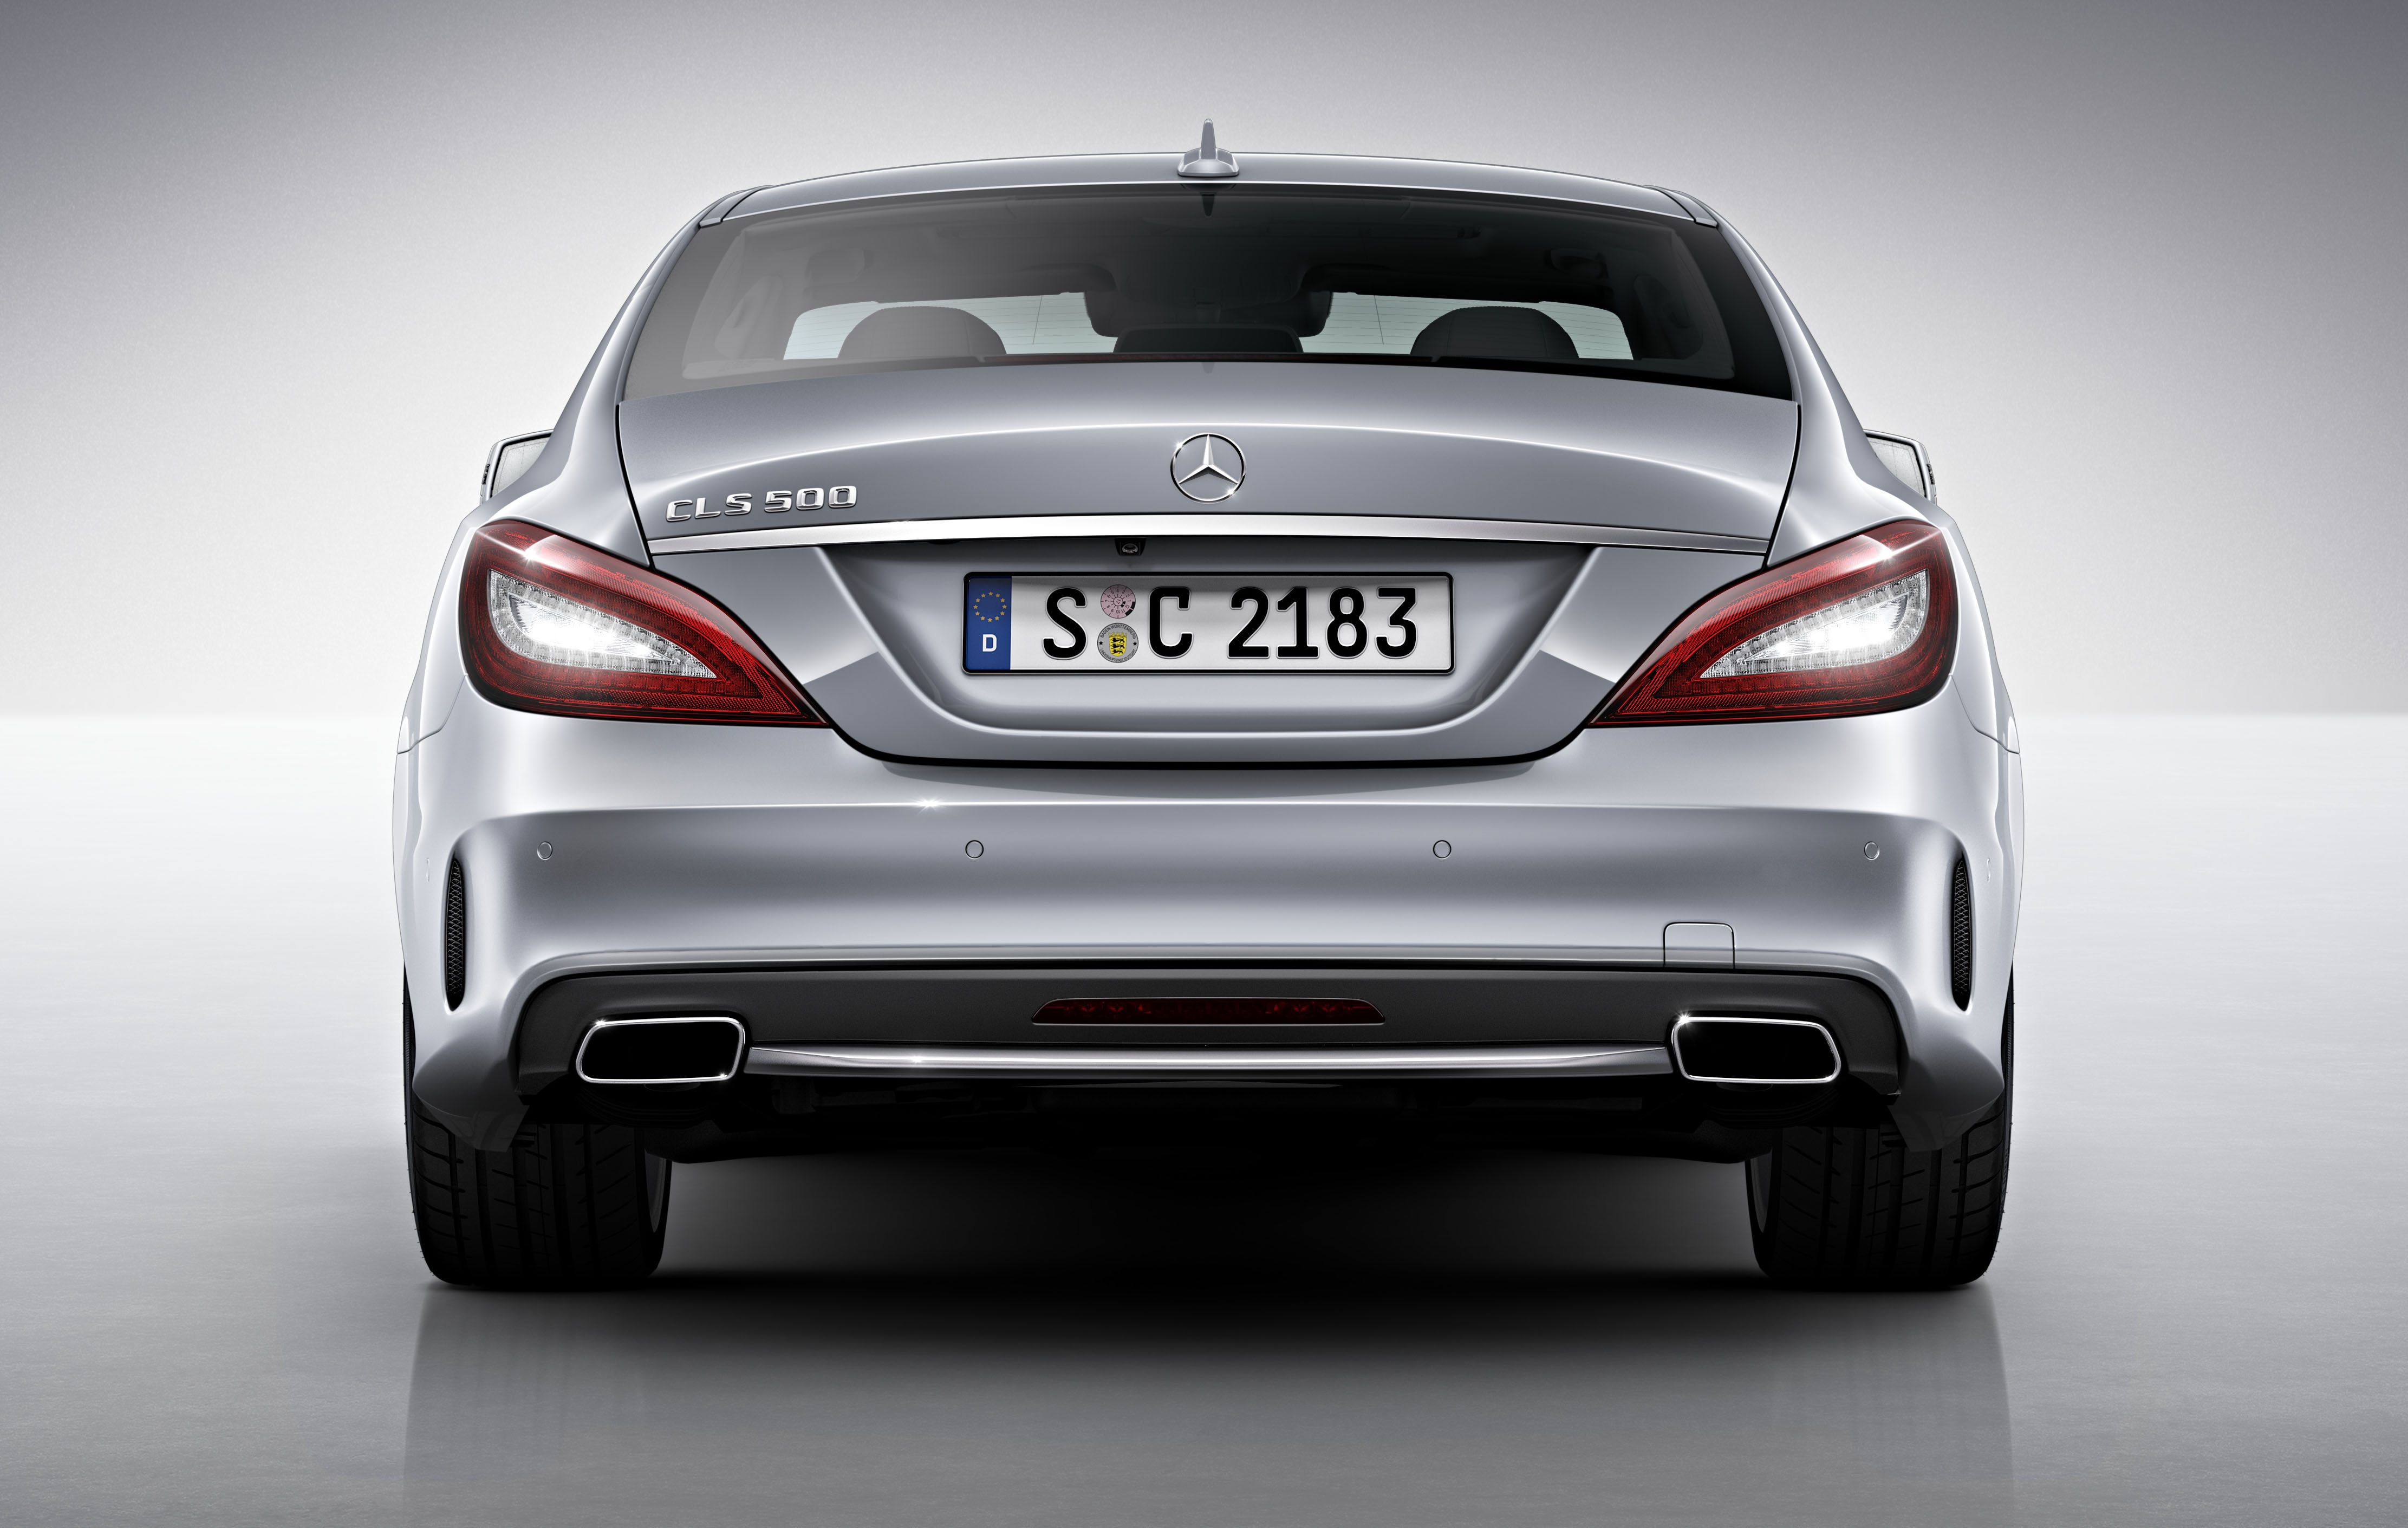 Mercedes-Benz CLS 400 facelift previewed in Malaysia Paul ...